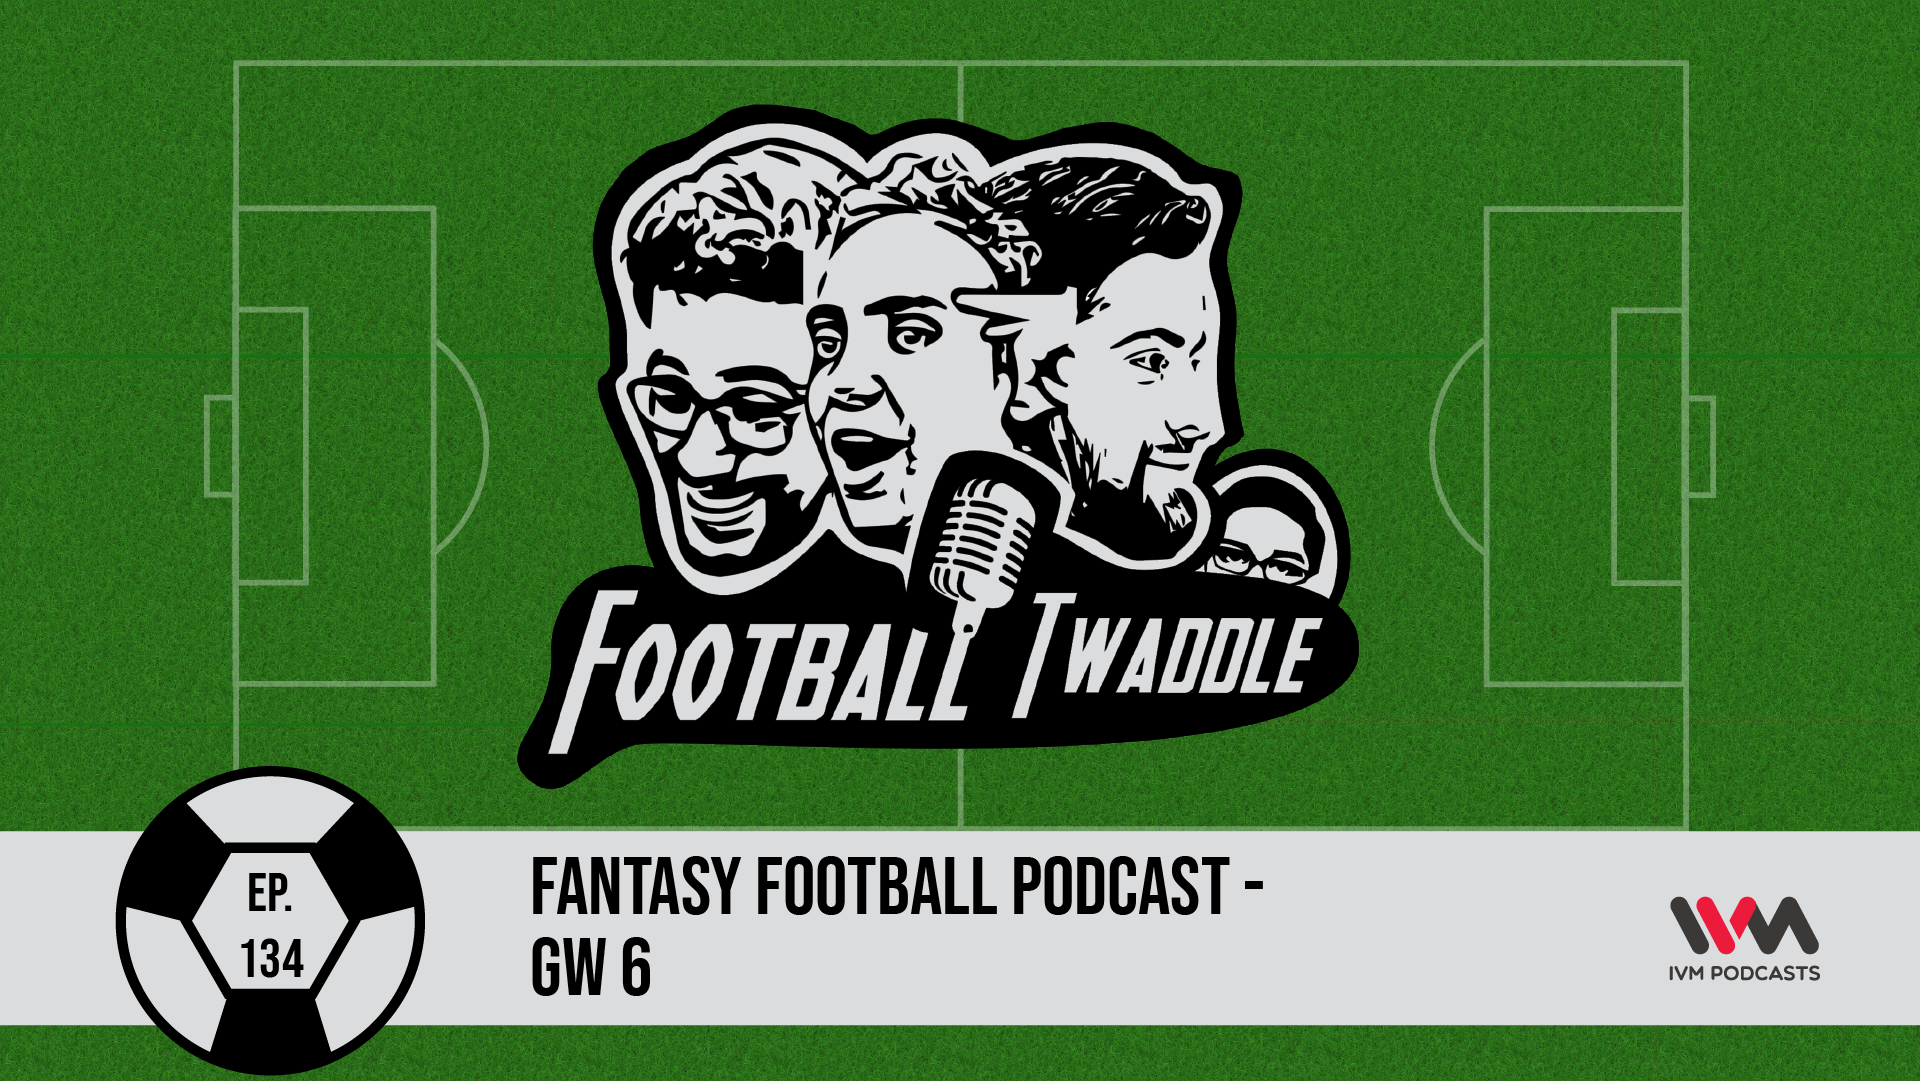 FootballTwaddleEpisode134.png